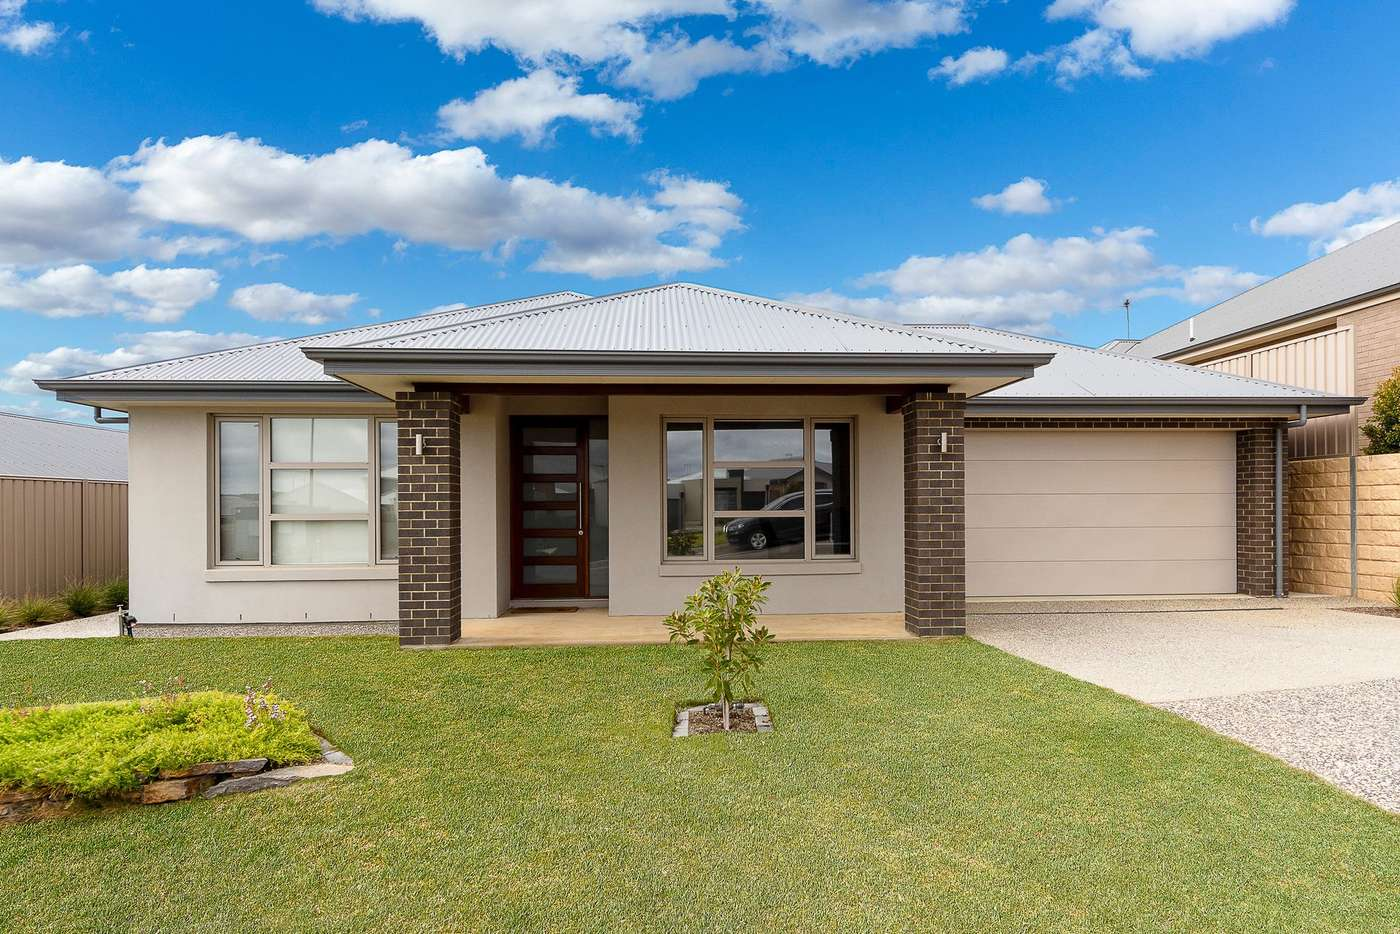 Main view of Homely house listing, 17 Seymour Drive, Mount Barker SA 5251